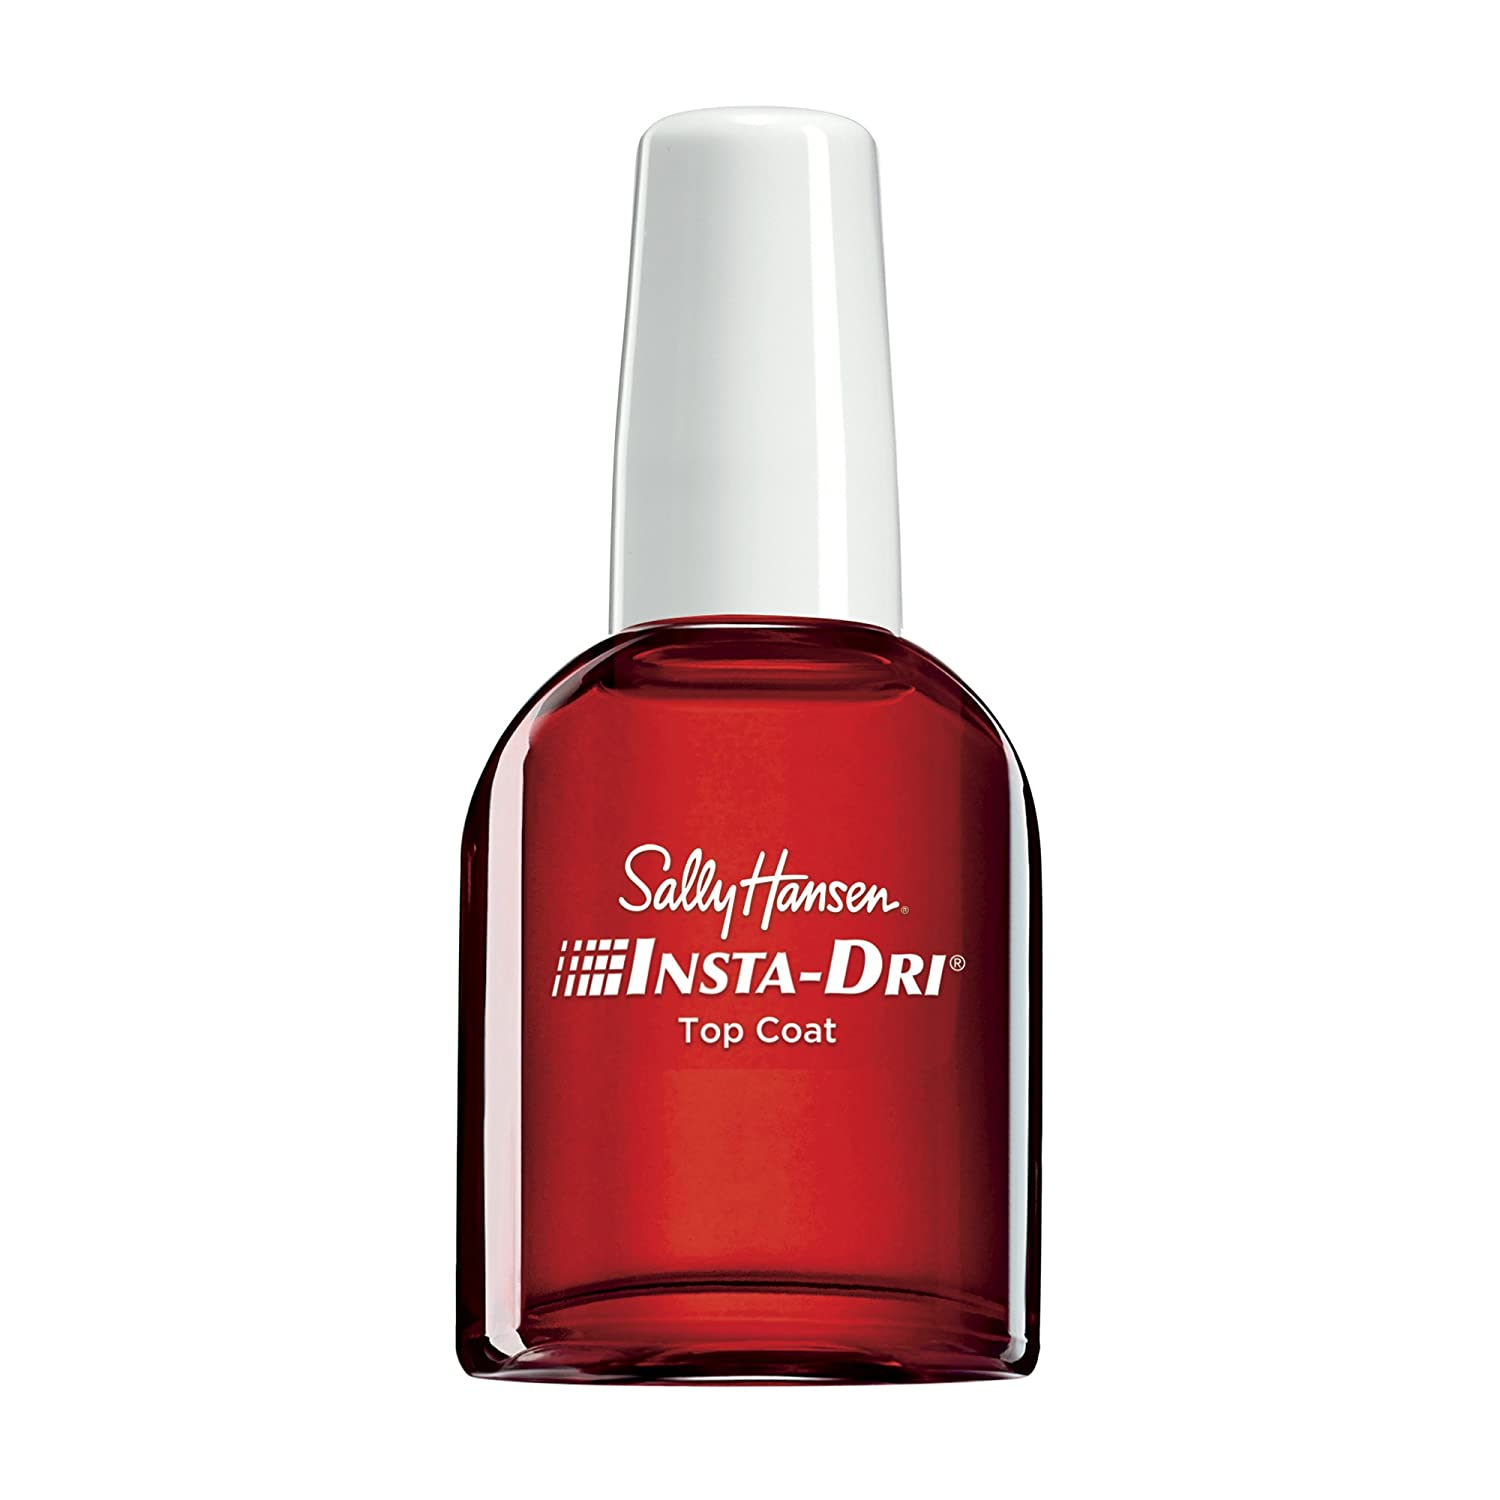 Sally Hansen Insta-Dri Anti-Chip Top Coat by Sally Hansen 30072499000